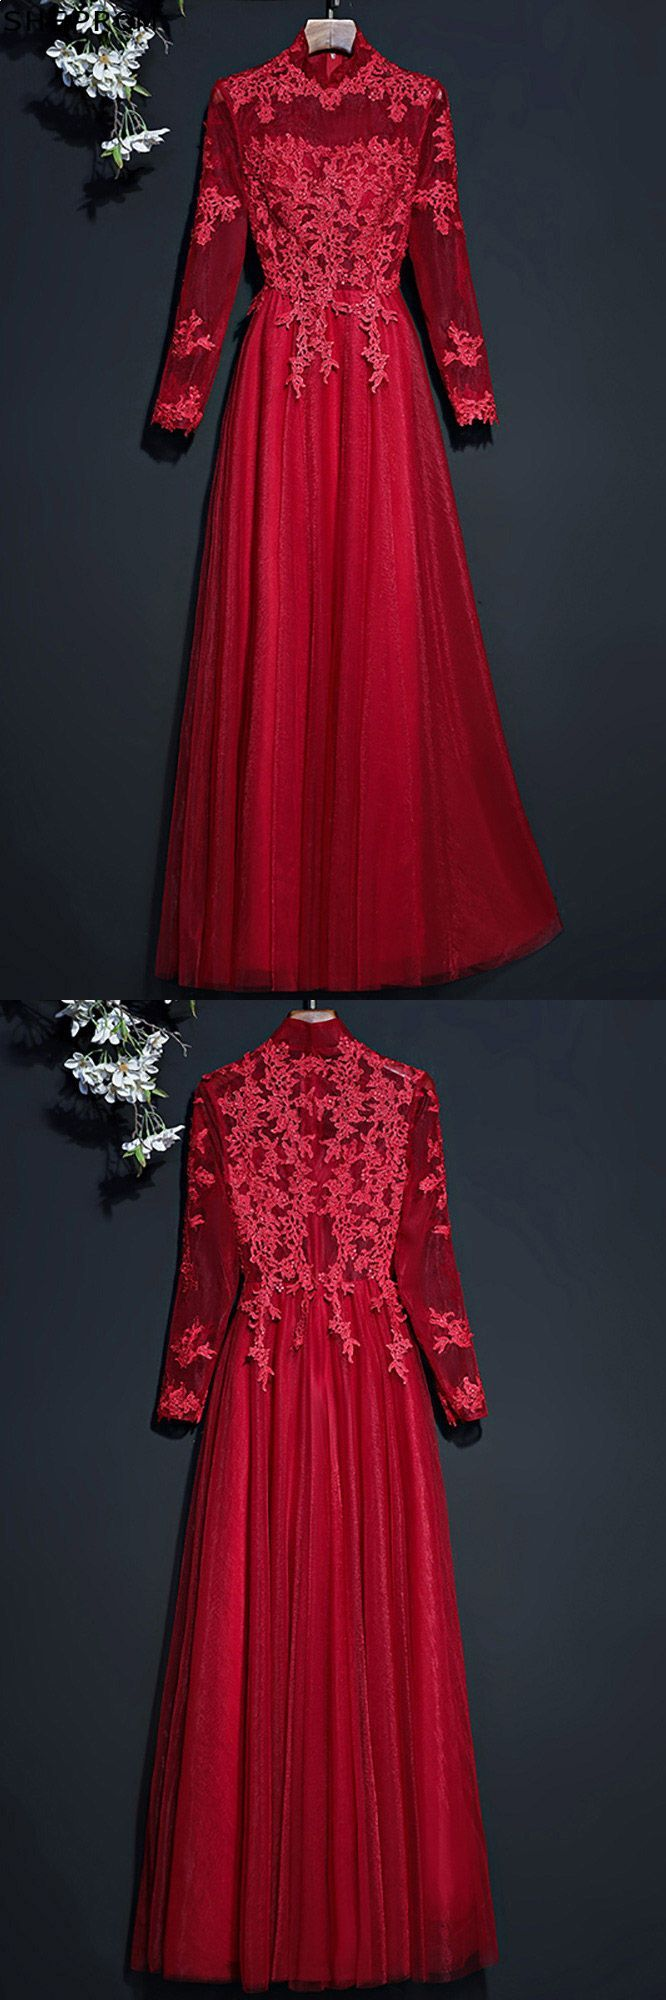 Vintage lace high neck prom party dress with long sleeves